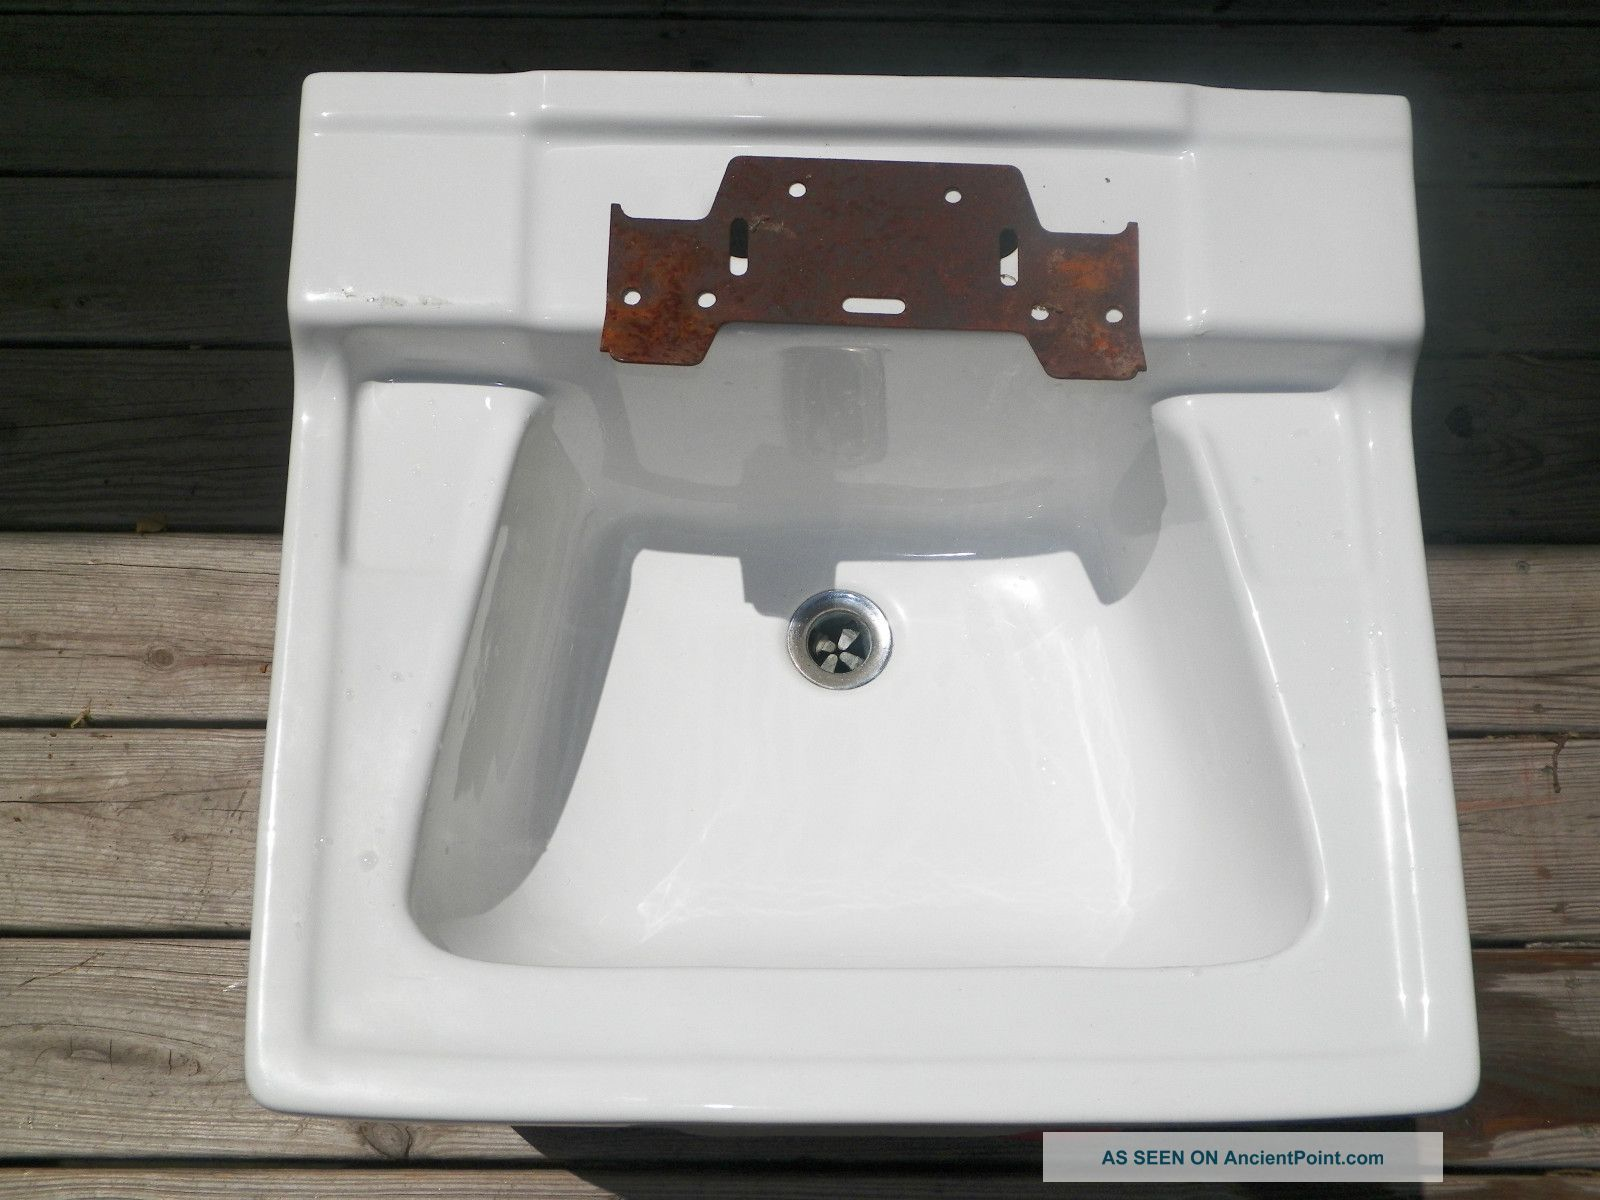 ... Gerber Wall Mount Porcelain Sink With Mounting Bracket. Sinks photo 6